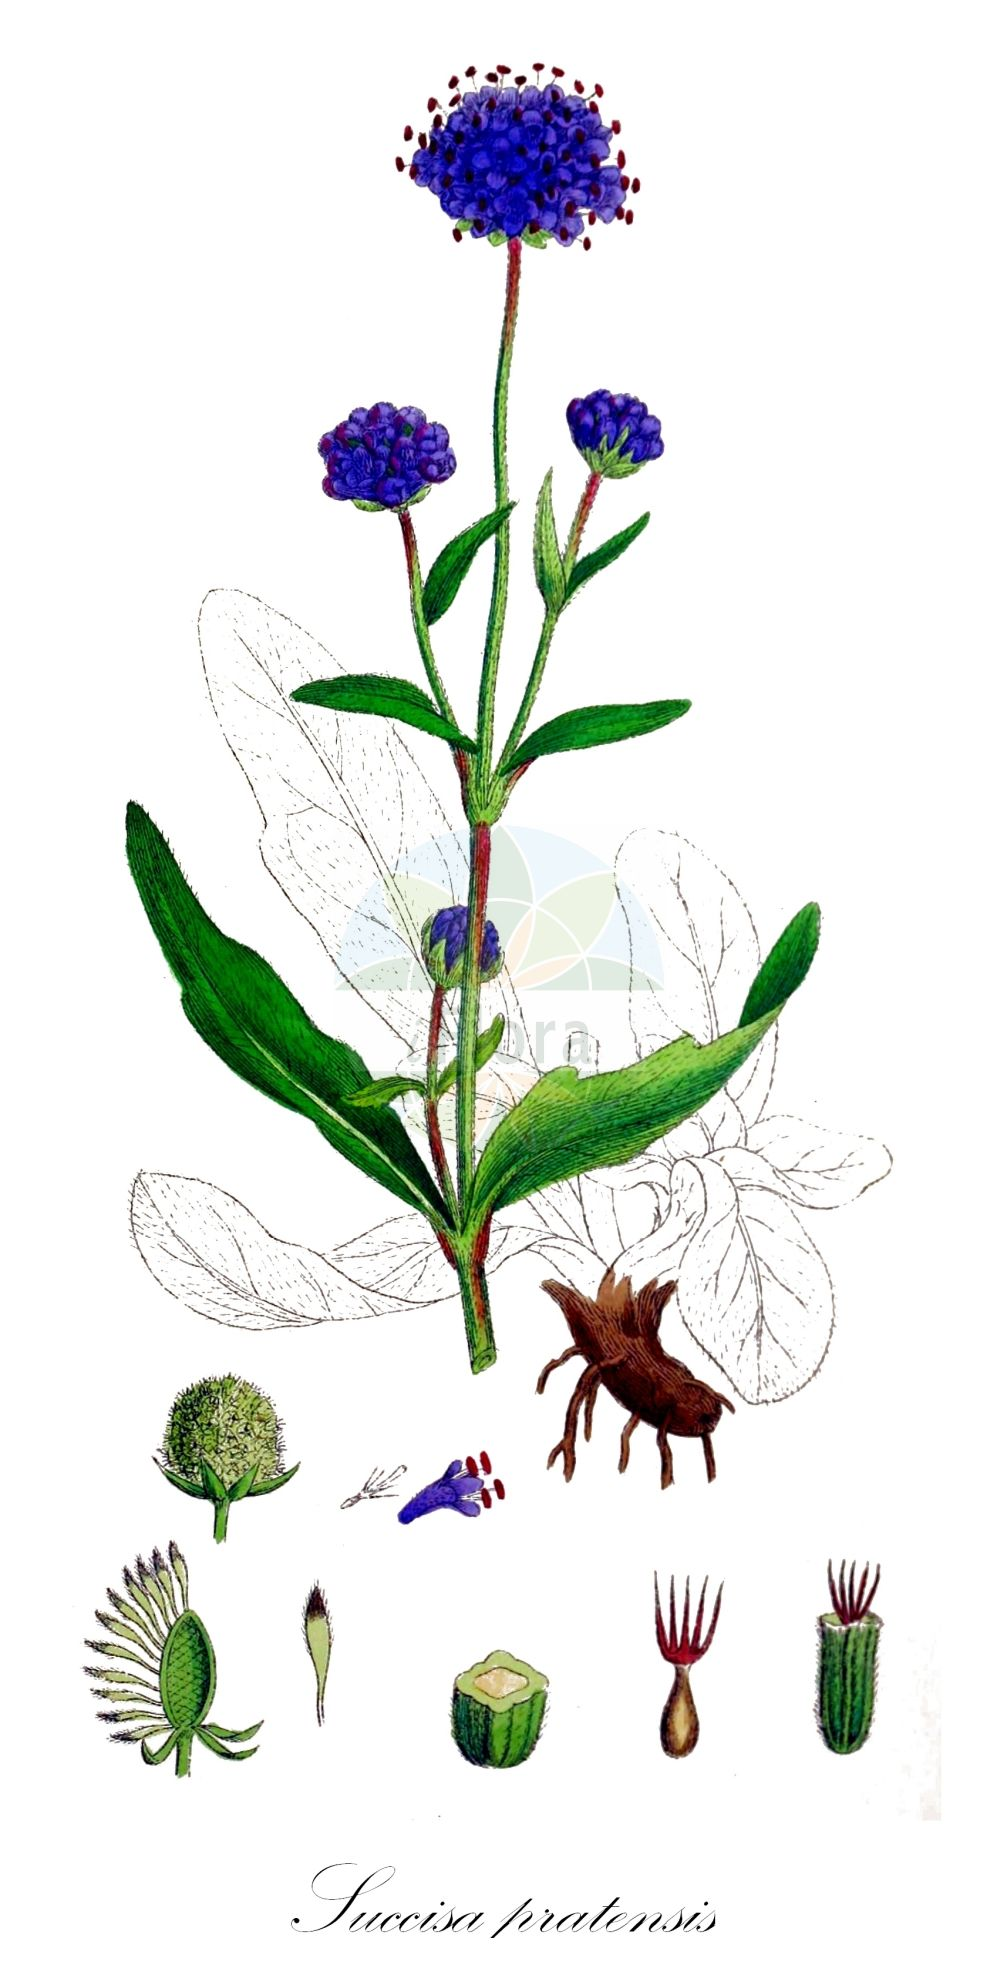 Historische Abbildung von Succisa pratensis (Gewoehnlicher Teufelsabbiss - Devil's-bit Scabious). Das Bild zeigt Blatt, Bluete, Frucht und Same. ---- Historical Drawing of Succisa pratensis (Gewoehnlicher Teufelsabbiss - Devil's-bit Scabious).The image is showing leaf, flower, fruit and seed.(Succisa pratensis,Gewoehnlicher Teufelsabbiss,Devil's-bit Scabious,Scabiosa glabrata,Scabiosa succisa,Succisa praemorsa,,Devilsbit,Succisa,Teufelsabbiss,Devil'S Bit Scabious,Caprifoliaceae,Geissblattgewaechse,Honeysuckle family,Blatt,Bluete,Frucht,Same,leaf,flower,fruit,seed,Sowerby (1790-1813))